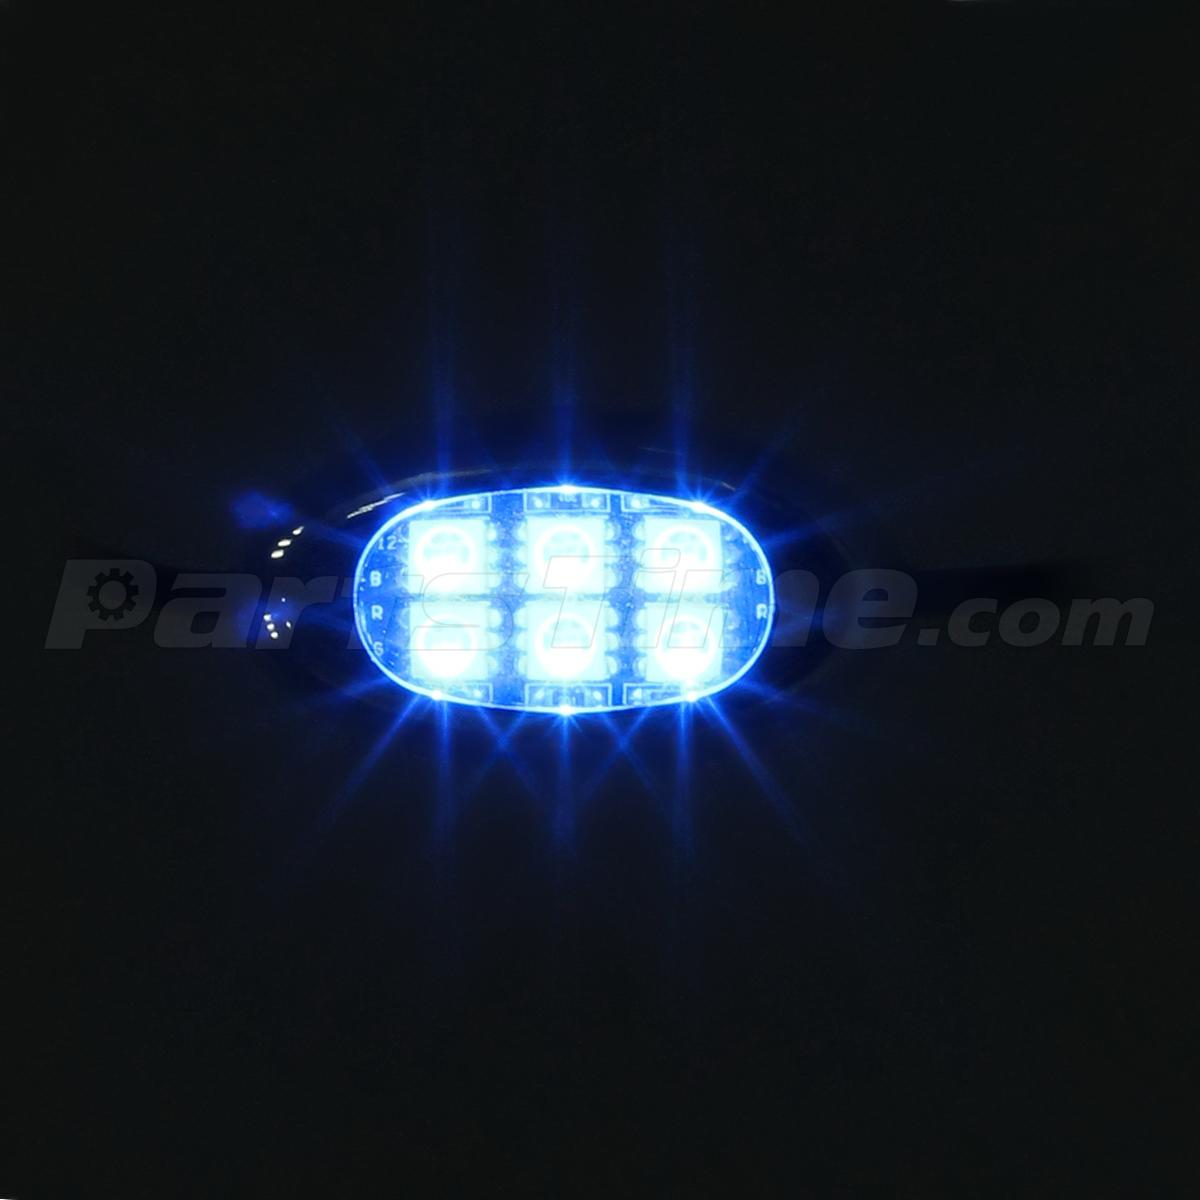 Blue 6 pod motorcycle 36 led underglow neon accent bike lighting kit w switch ebay - Underglow neon ...